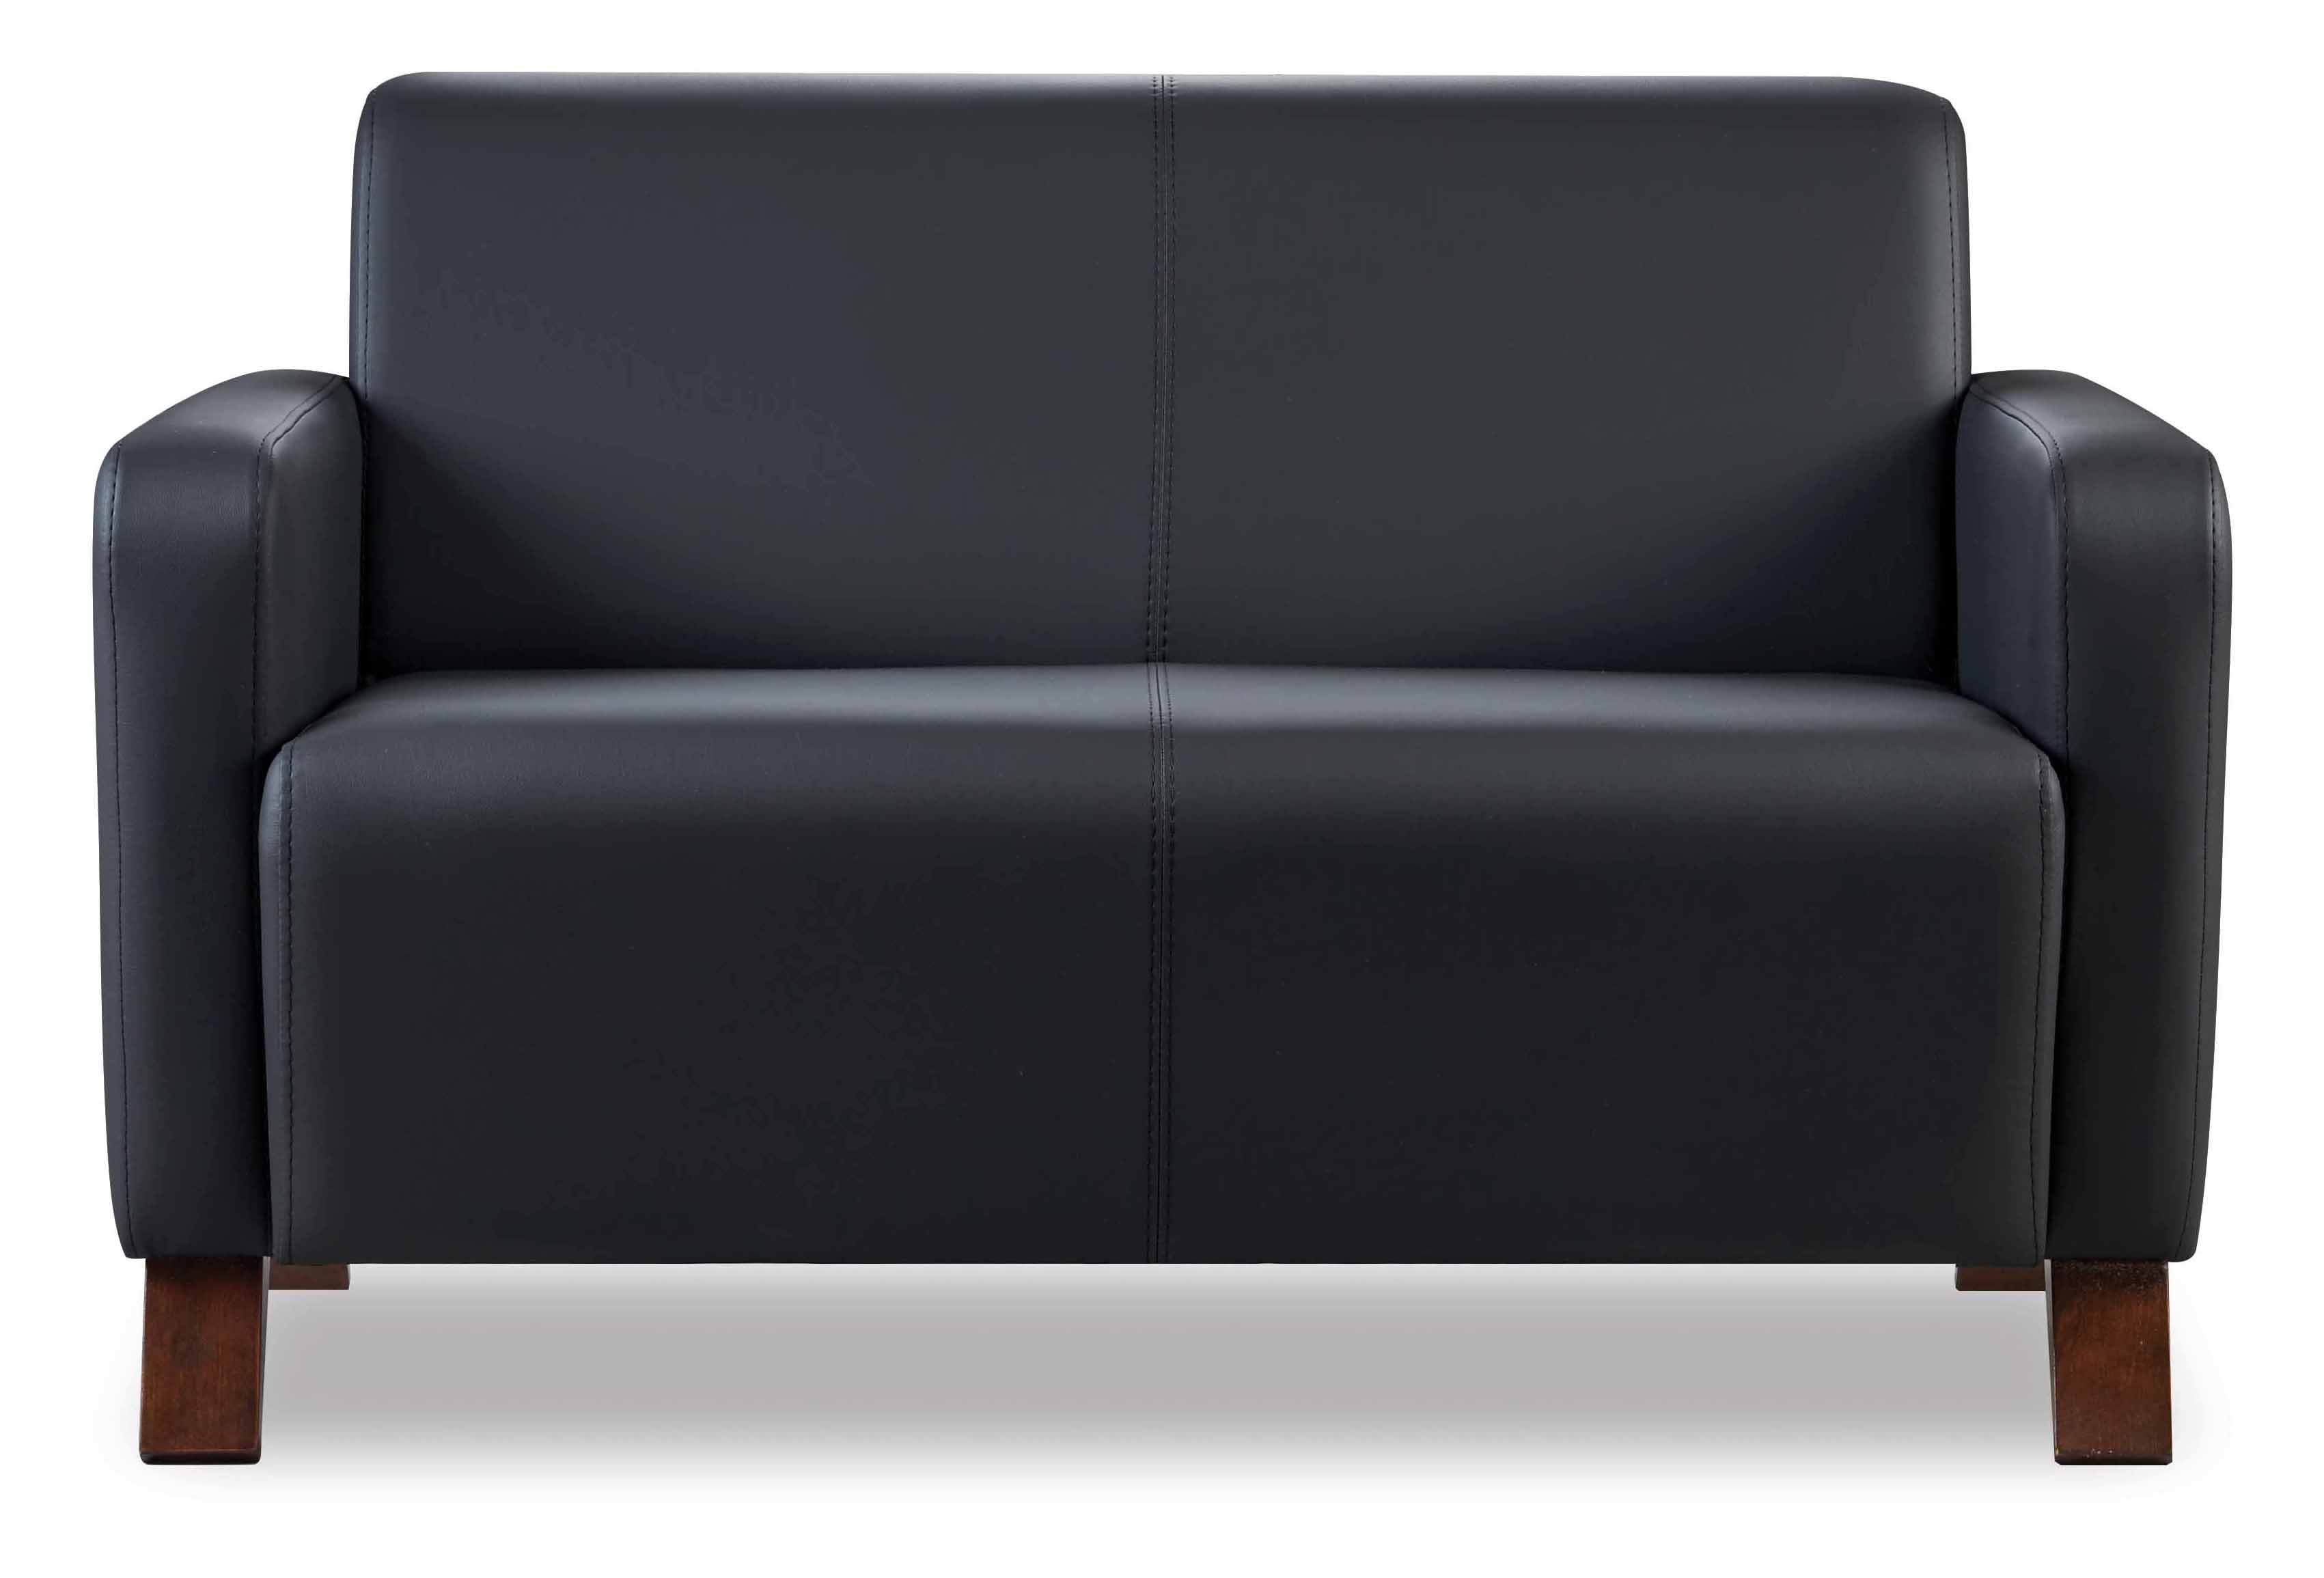 inova lounge sofa 2 sitzer schwarz m bel star. Black Bedroom Furniture Sets. Home Design Ideas